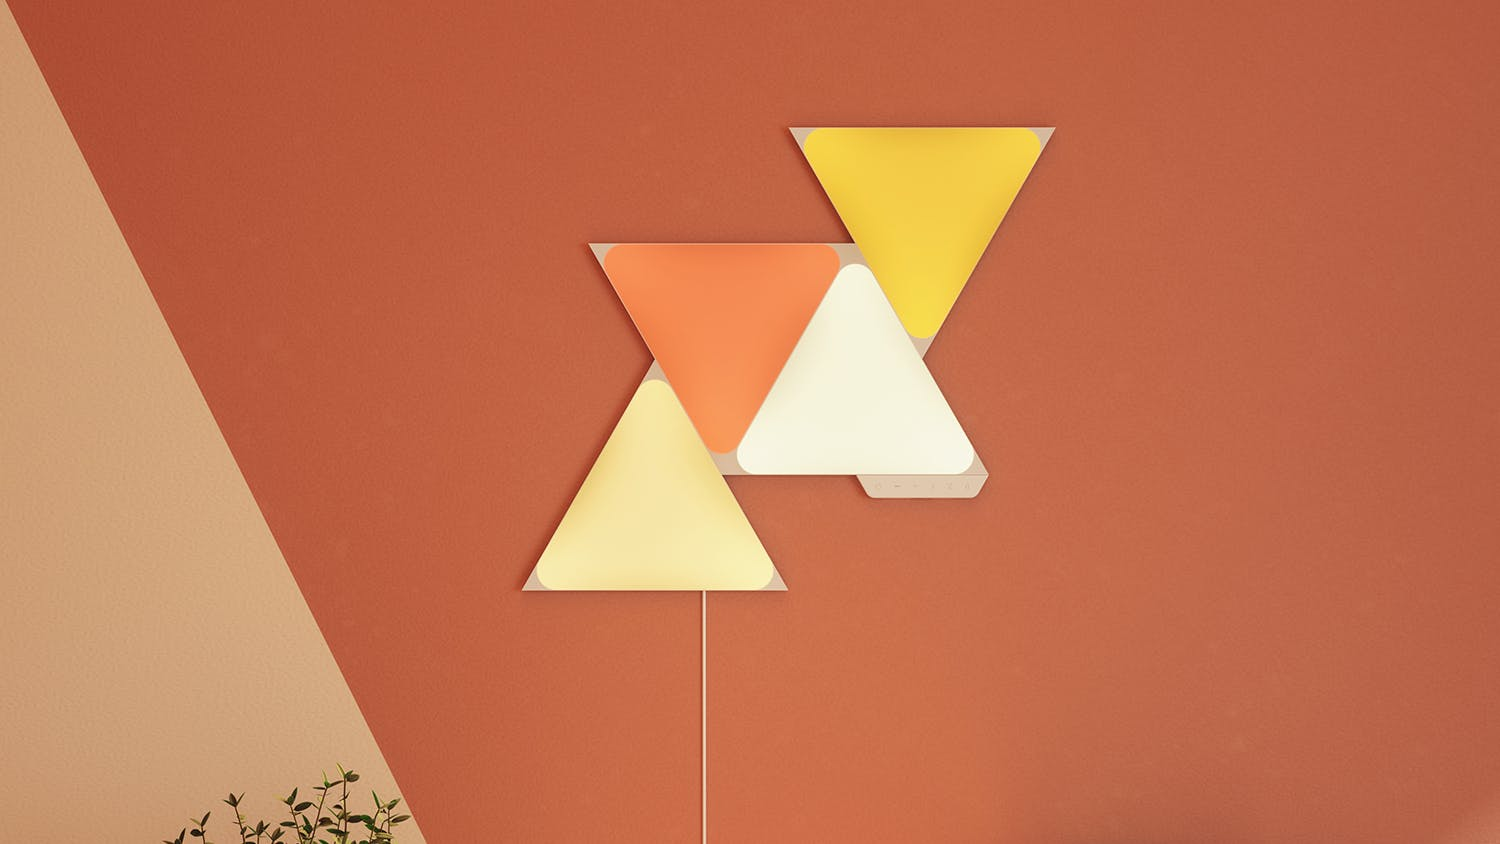 Nanoleaf Shapes Triangles Starter Kit - 9 Pack